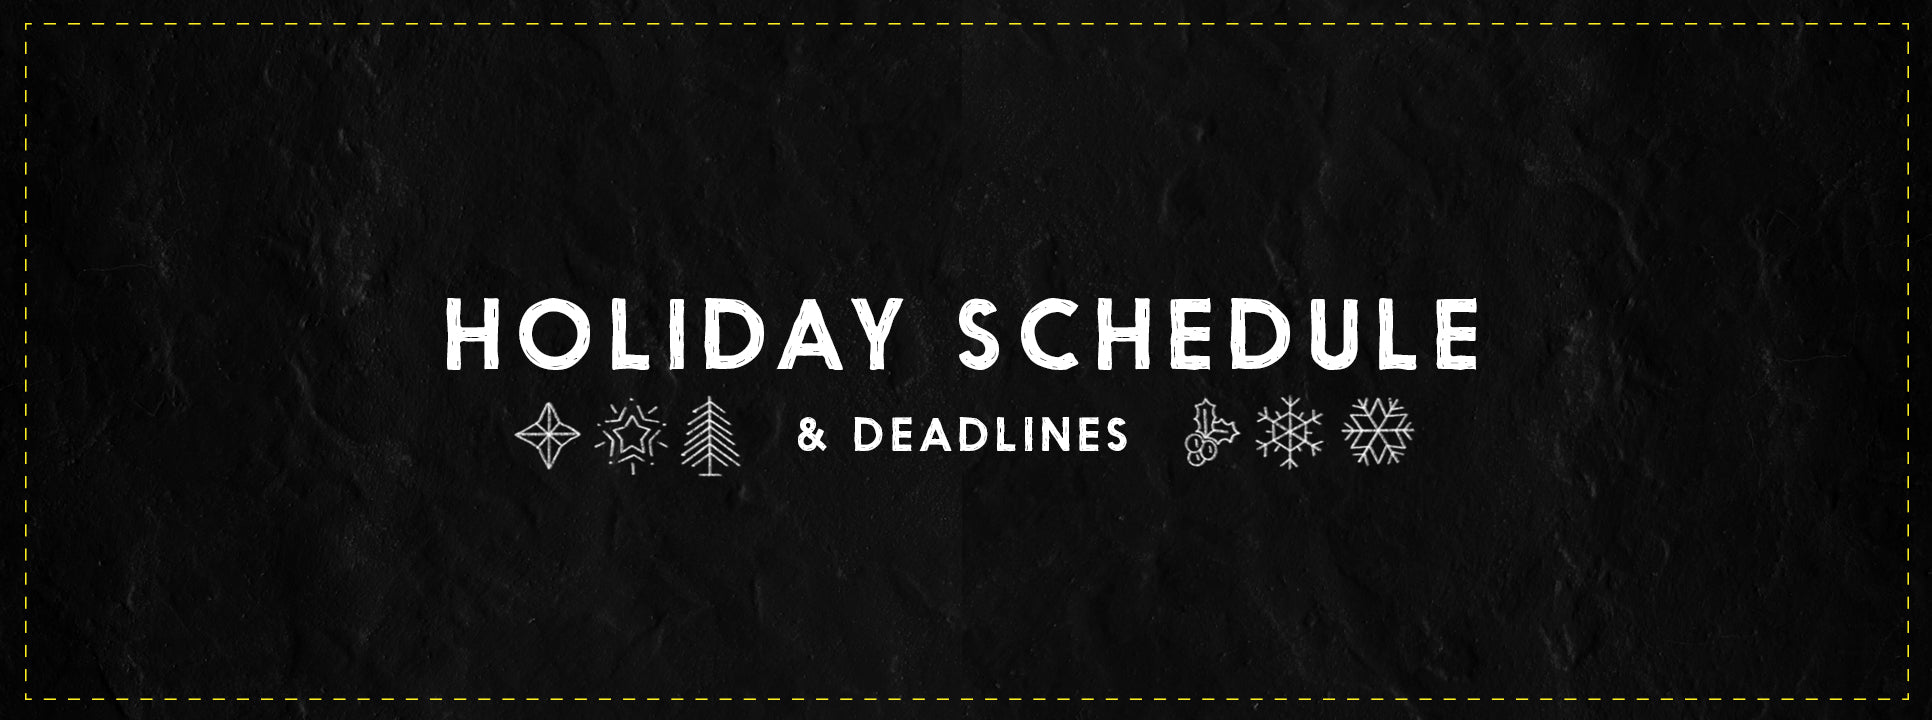 2019 Holiday Schedule